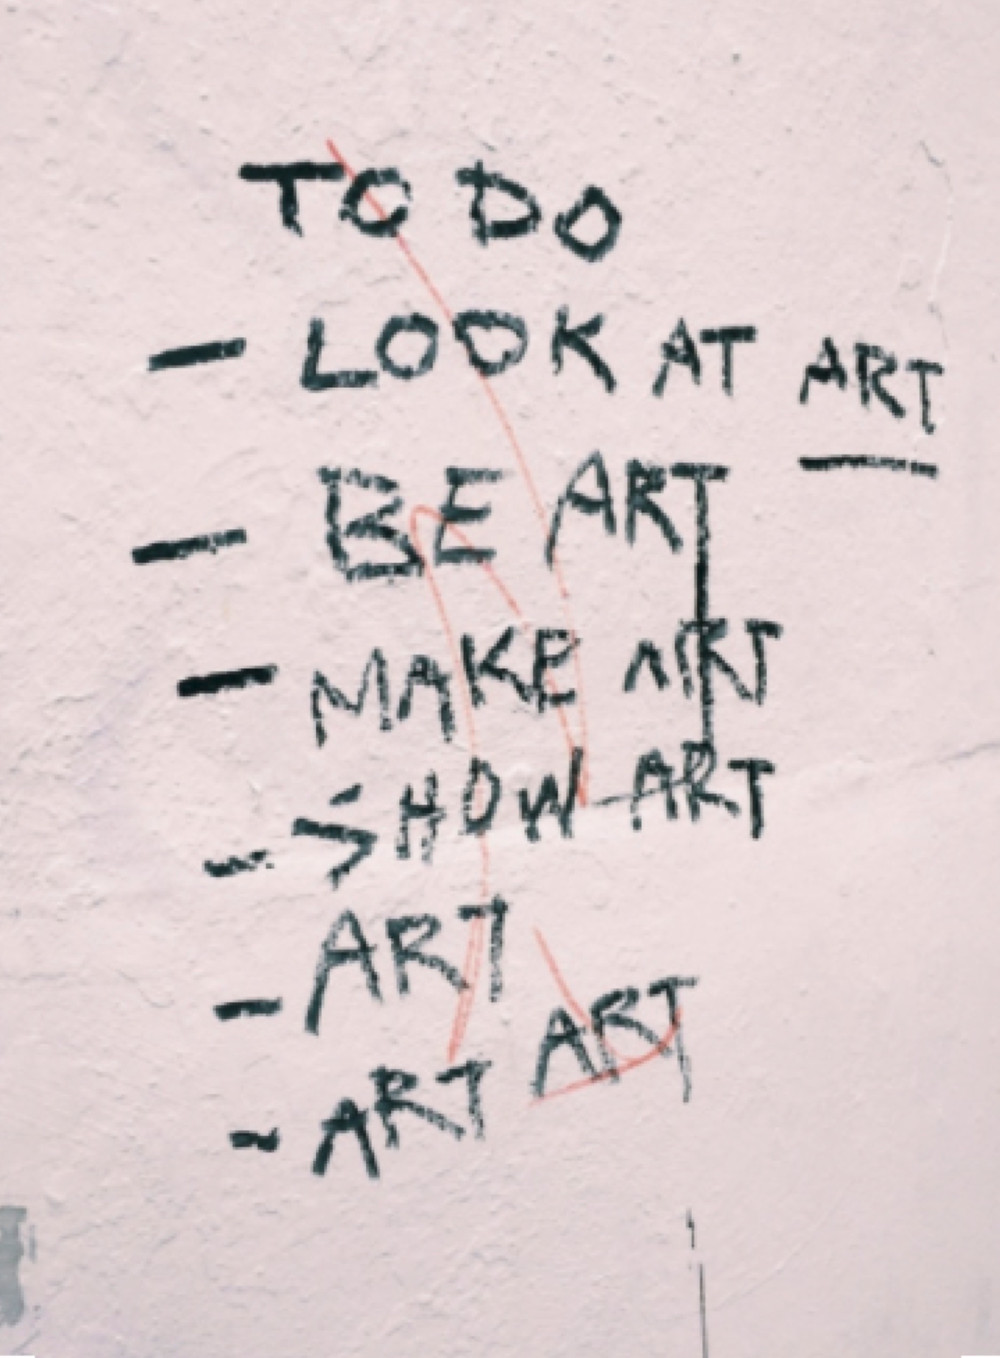 Image Of To-Do List For Artist